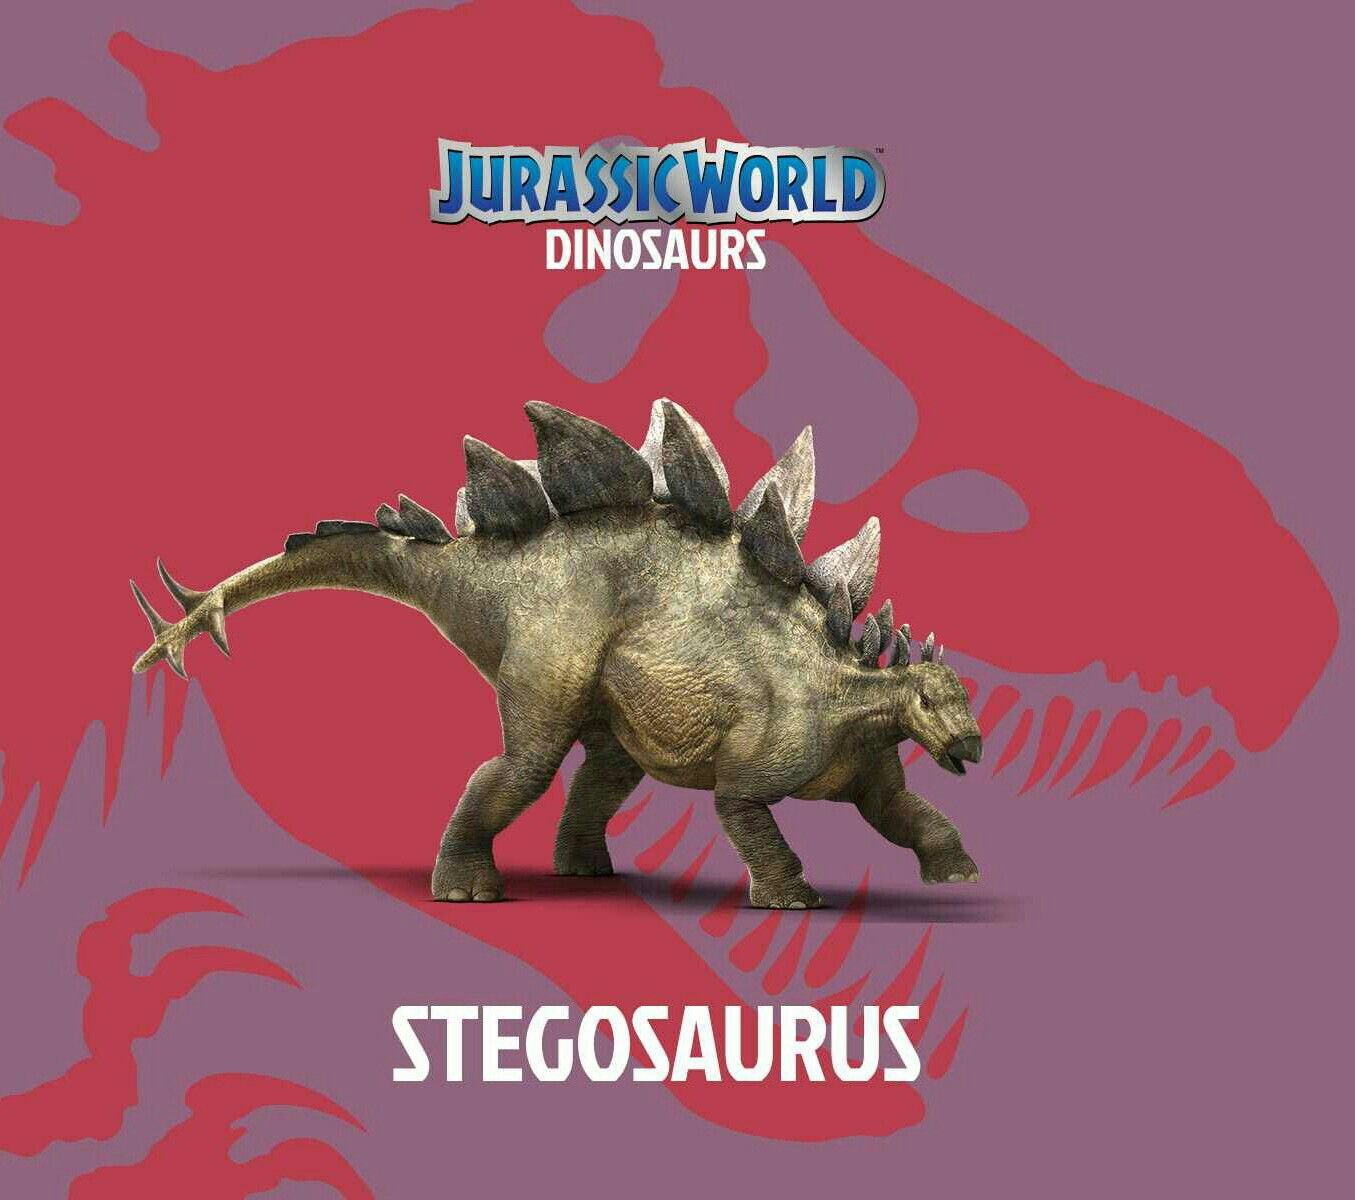 How To Draw A Stegosaurus From Jurassic World